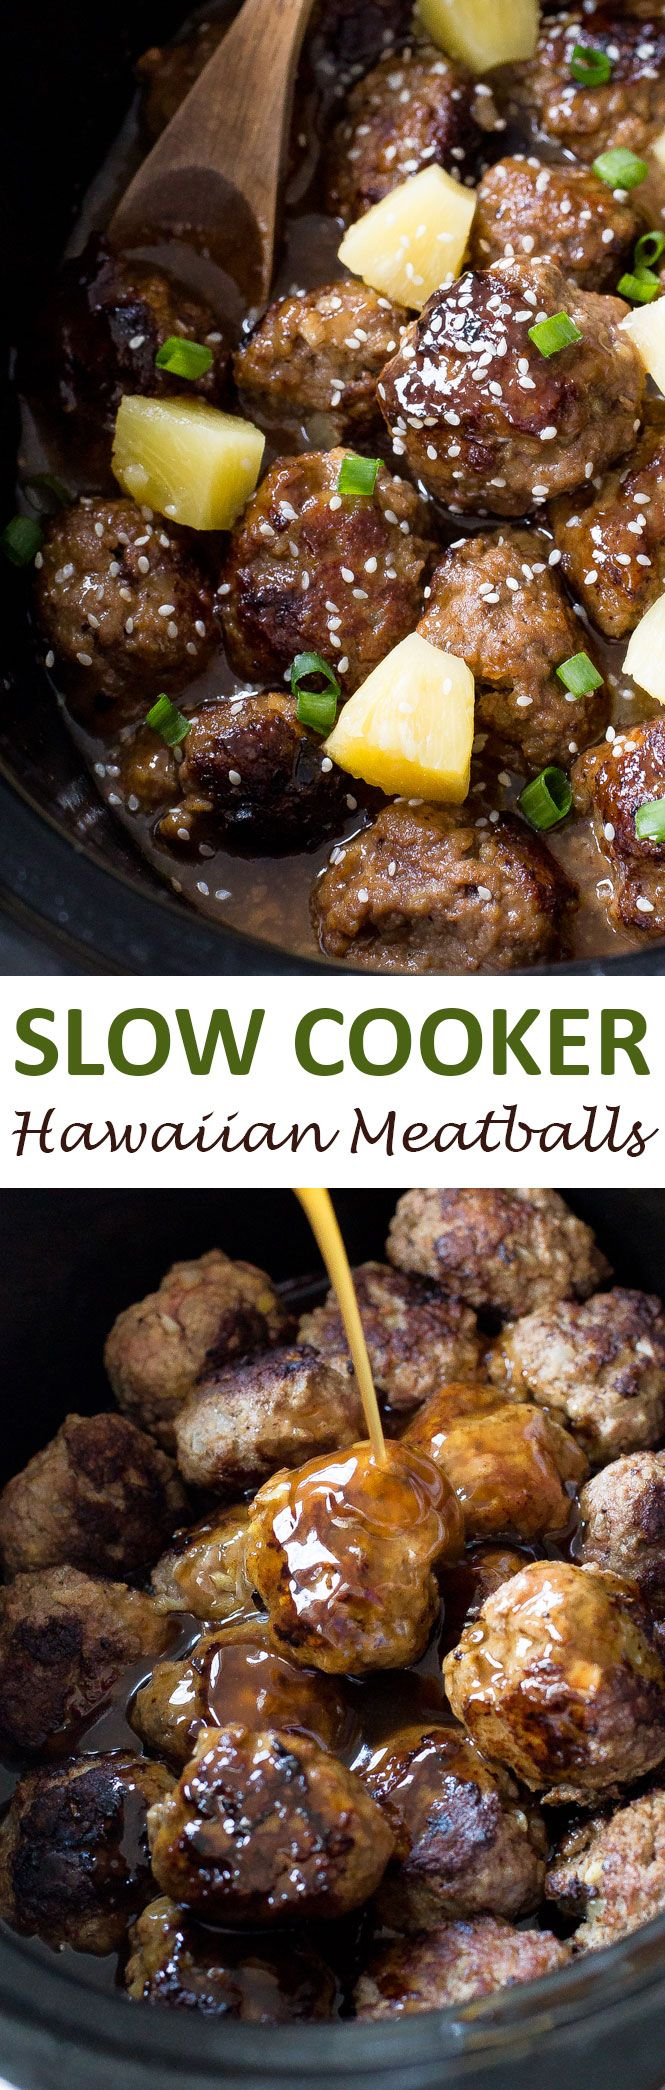 Slow Cooker Hawaiian Meatballs smothered in a sweet and sour sauce. They make a…